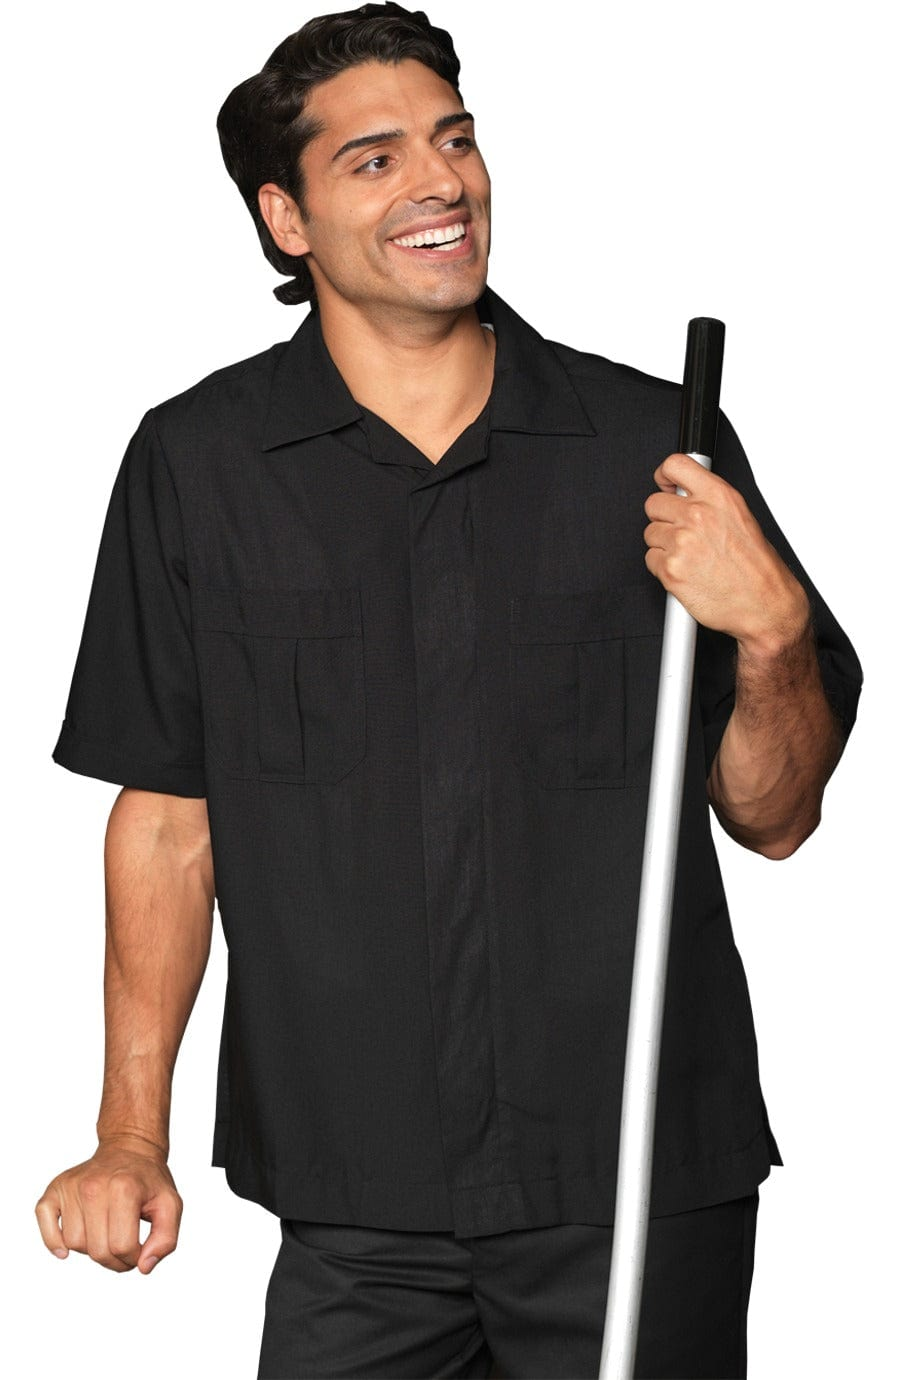 Black Spun Polyester Men's Housekeeping Service Shirt